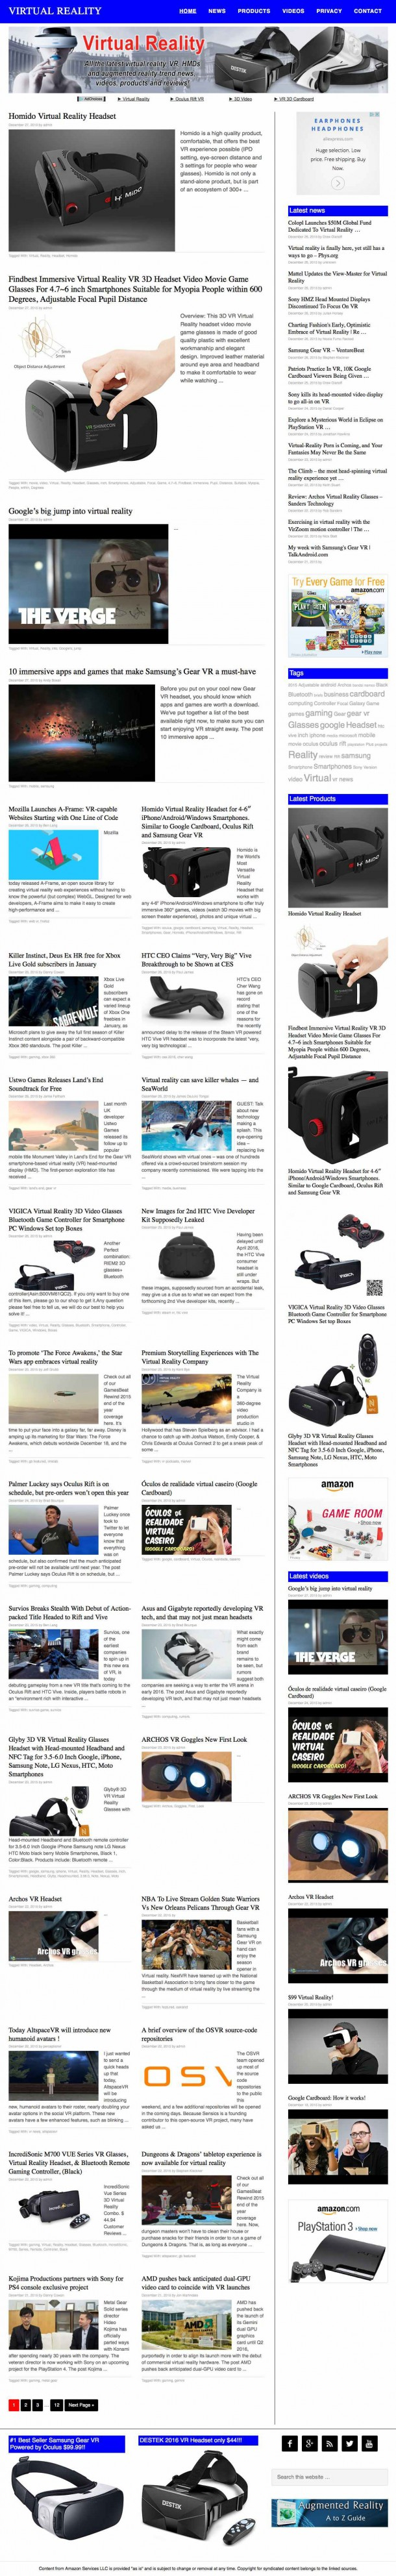 Virtual_Reality_–_All_the_latest_virtual_reality,_VR,_HMD_and_augmented_reality_trend_news,_videos,_products_and_reviews!